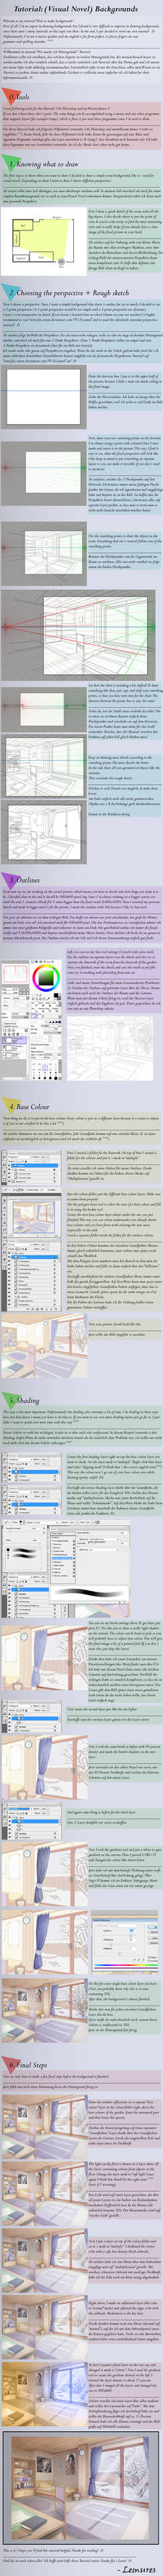 Visual Novel / Anime Background Tutorial